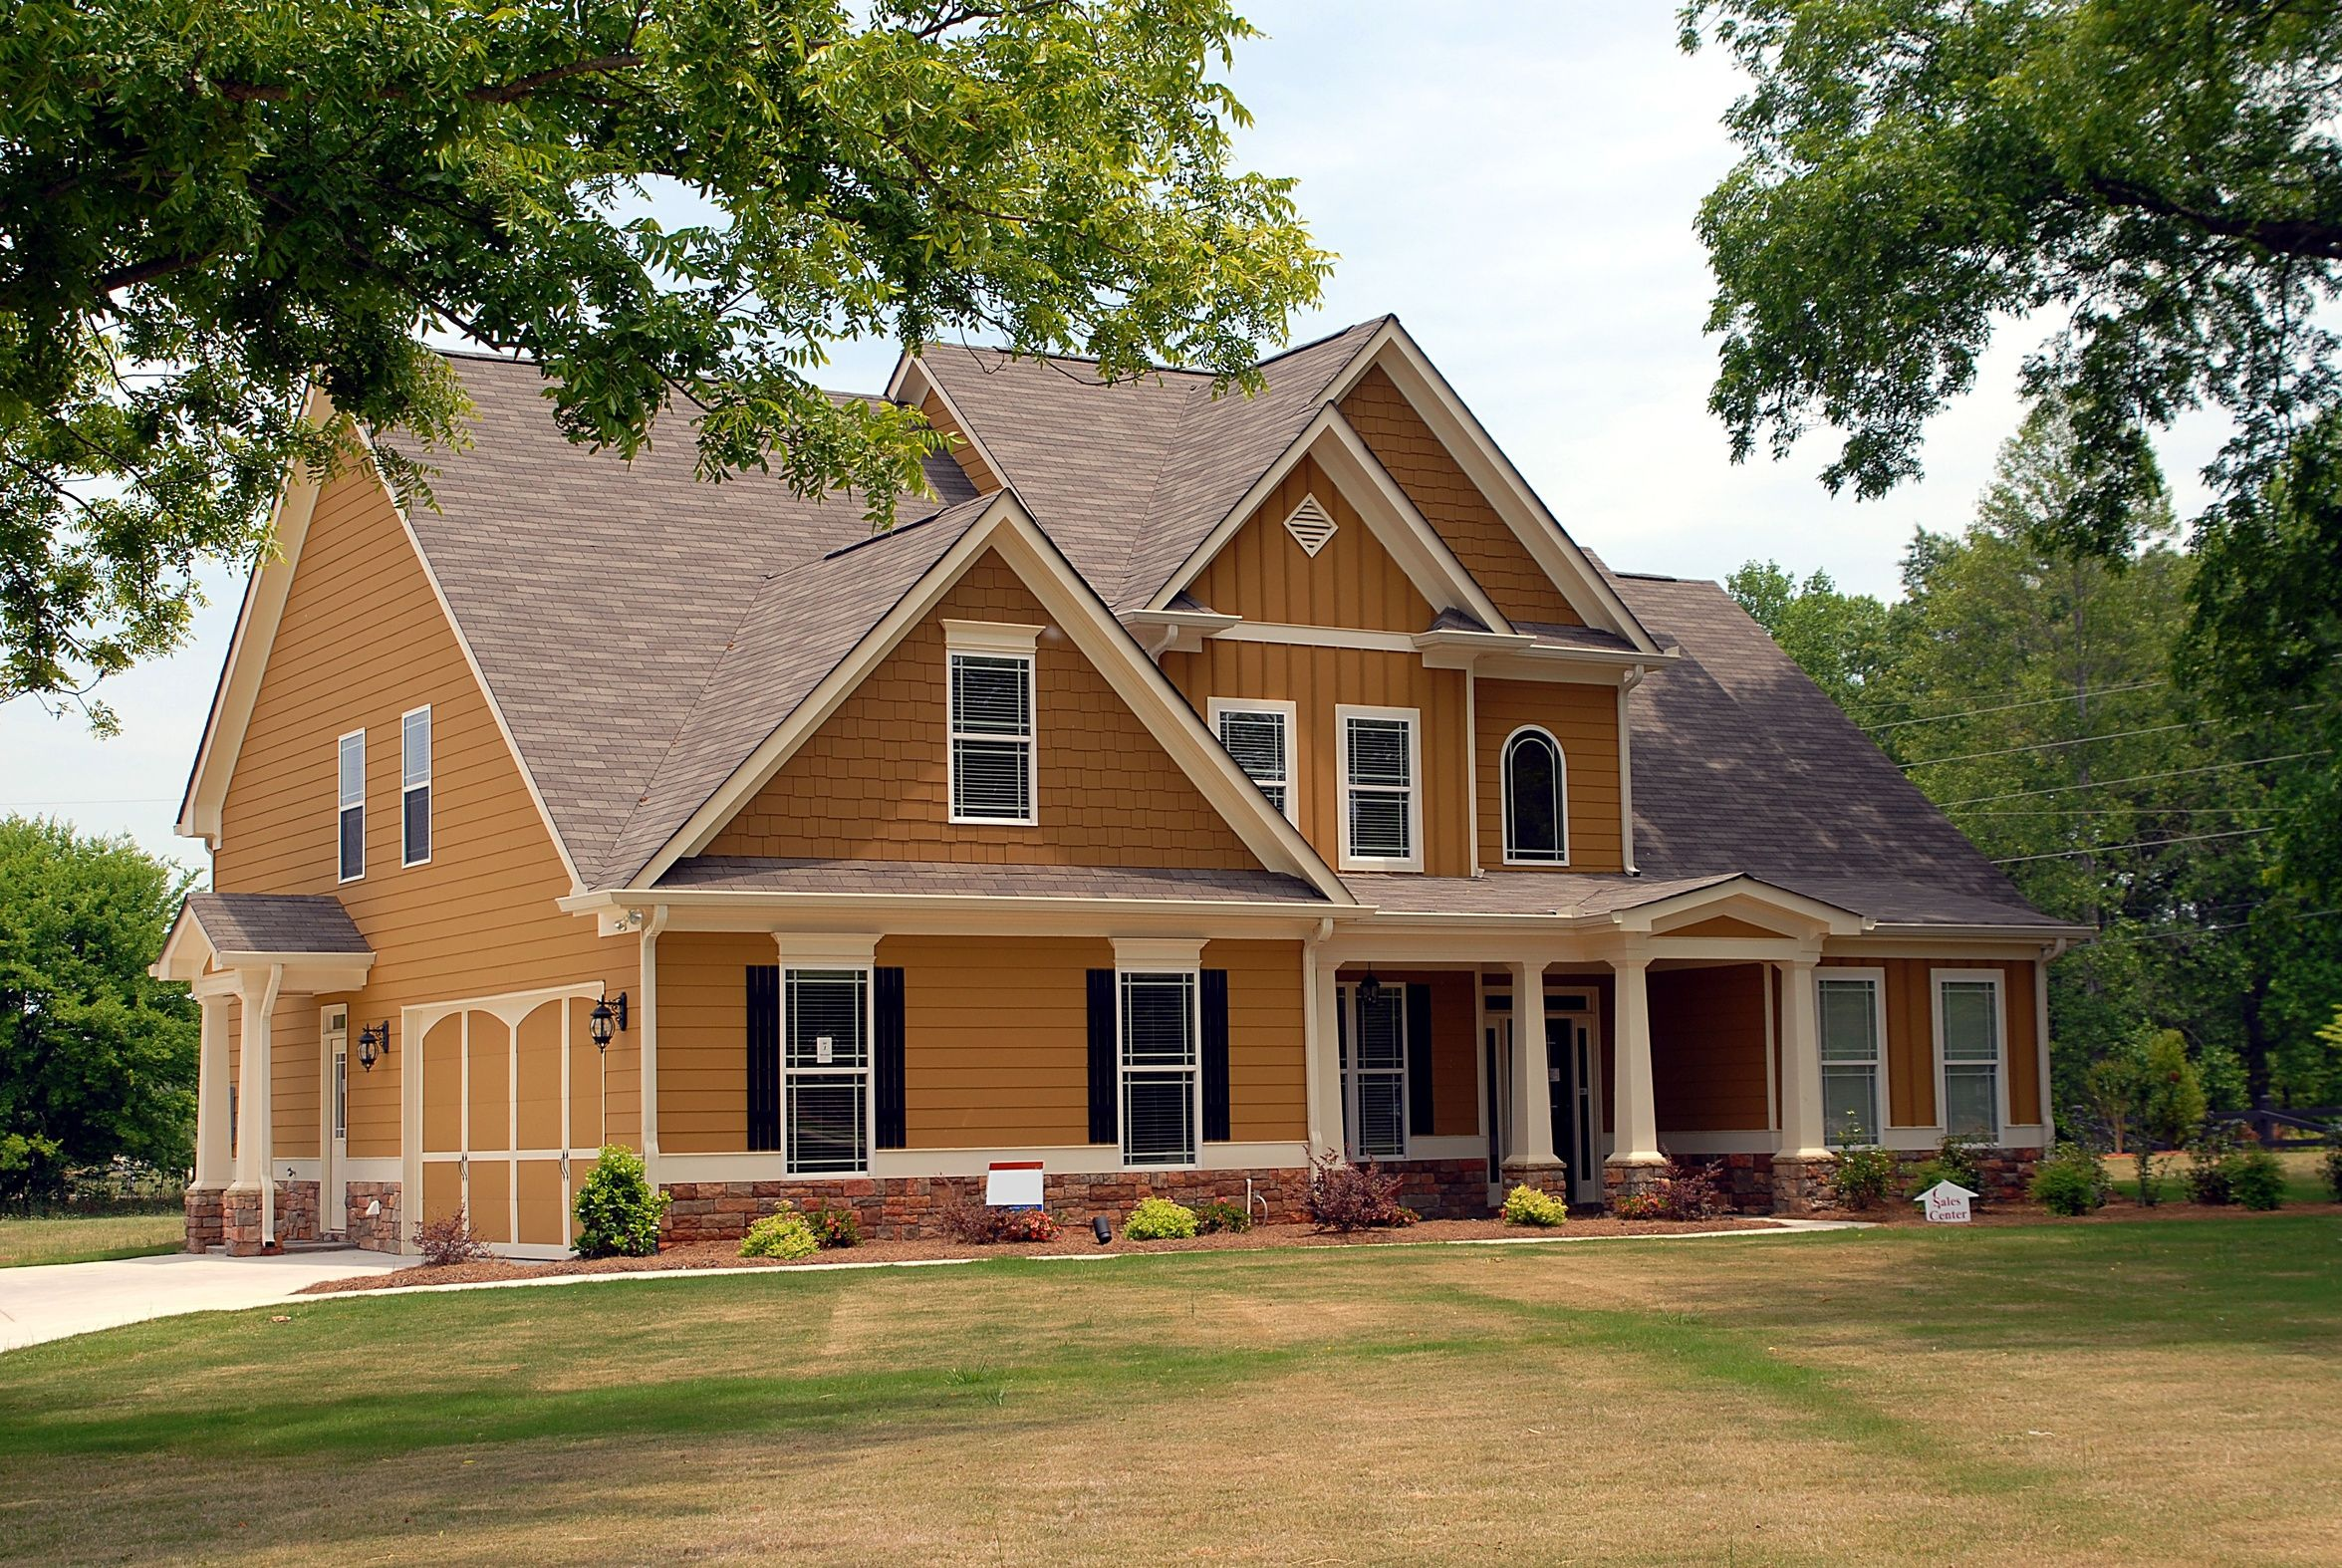 Brown Exterior House Paint Colors Looking for Professional House ...